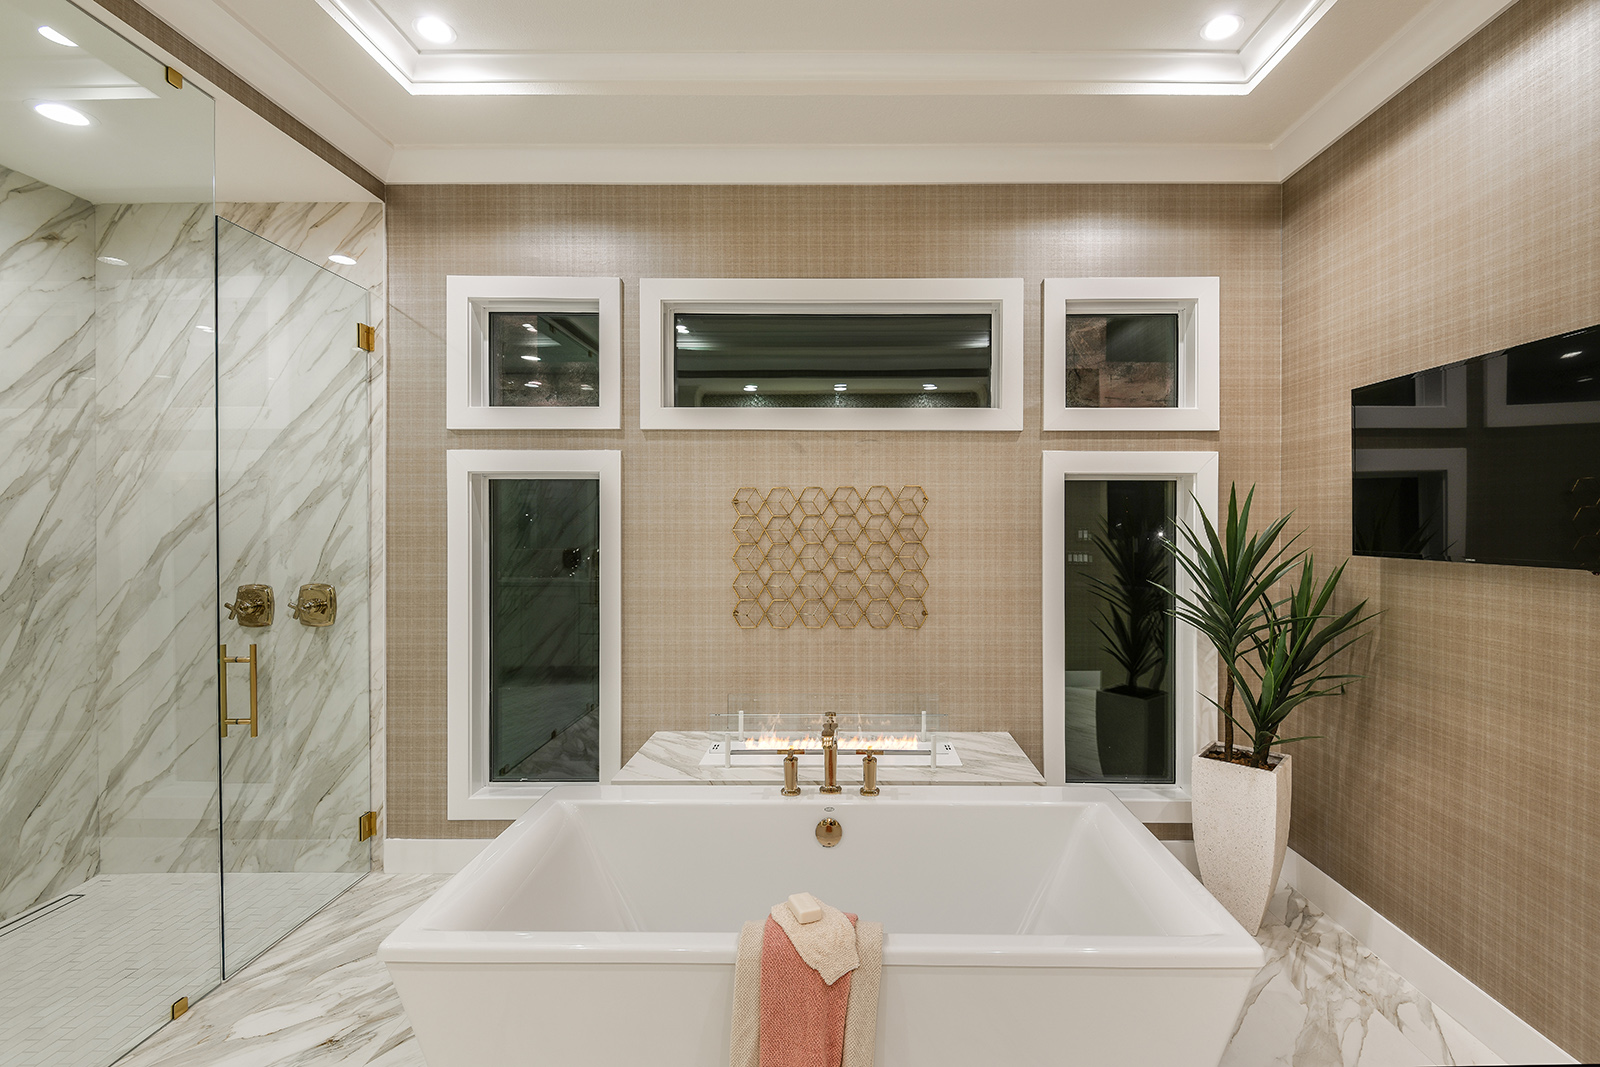 FLA-3-in-white-in-Florida-Project-by-LWHomes-Architect-Jae-Cho2.jpg